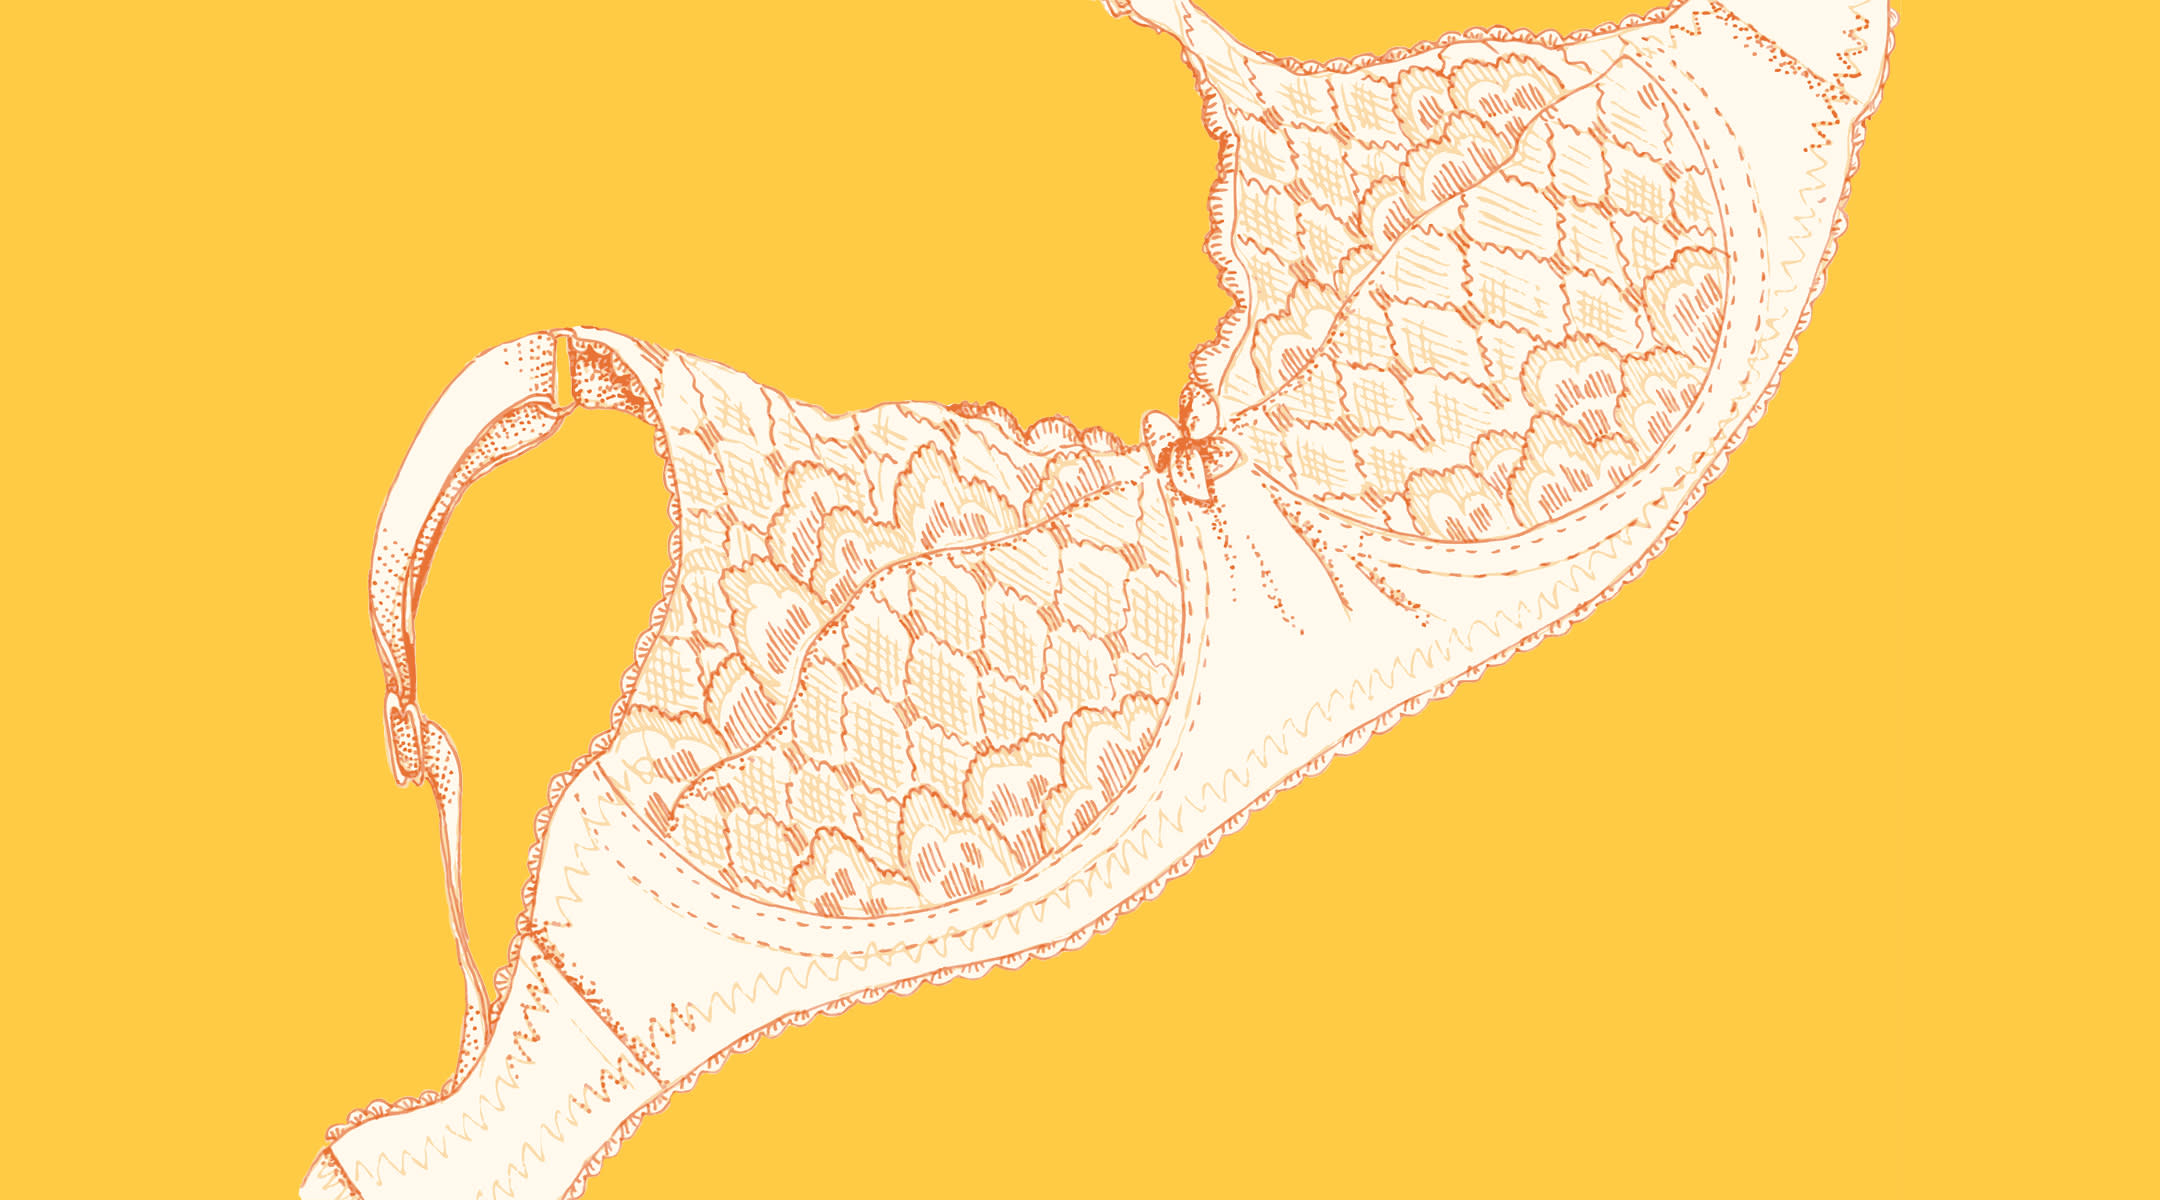 Illustration of lace bra with yellow background.